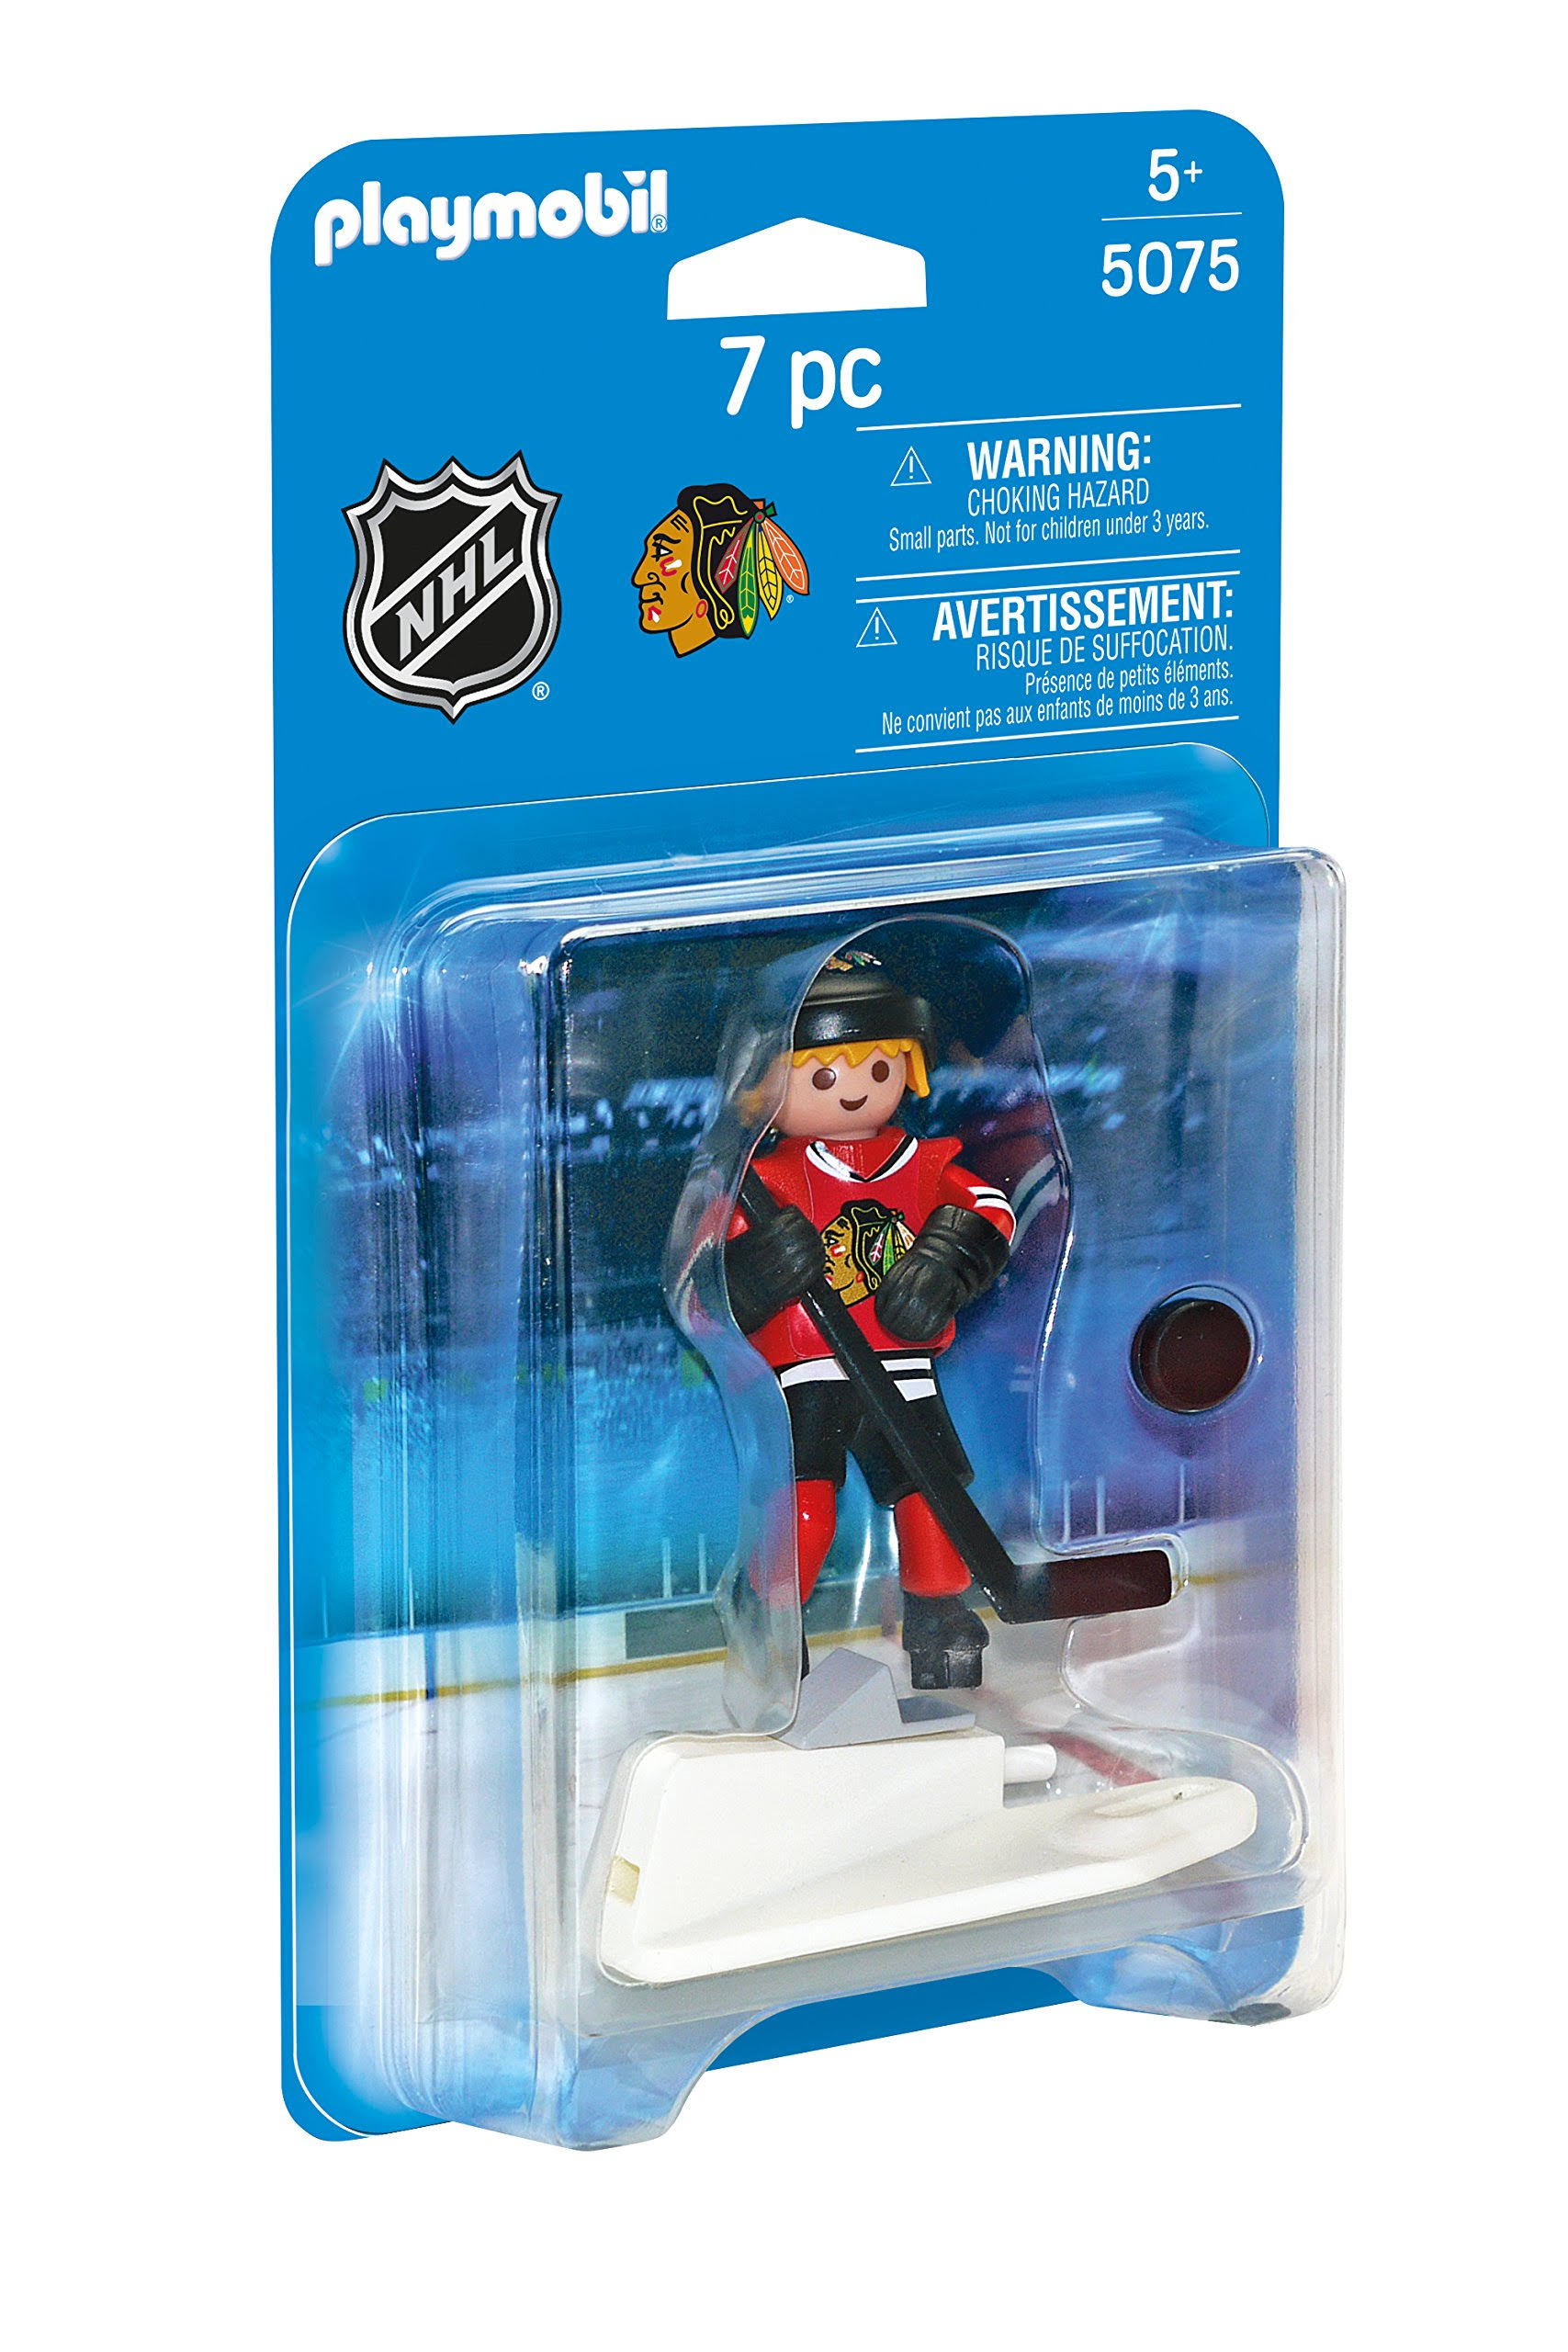 Playmobil 5075 Nhl Chicago Blackhawks Player - 7 Pieces